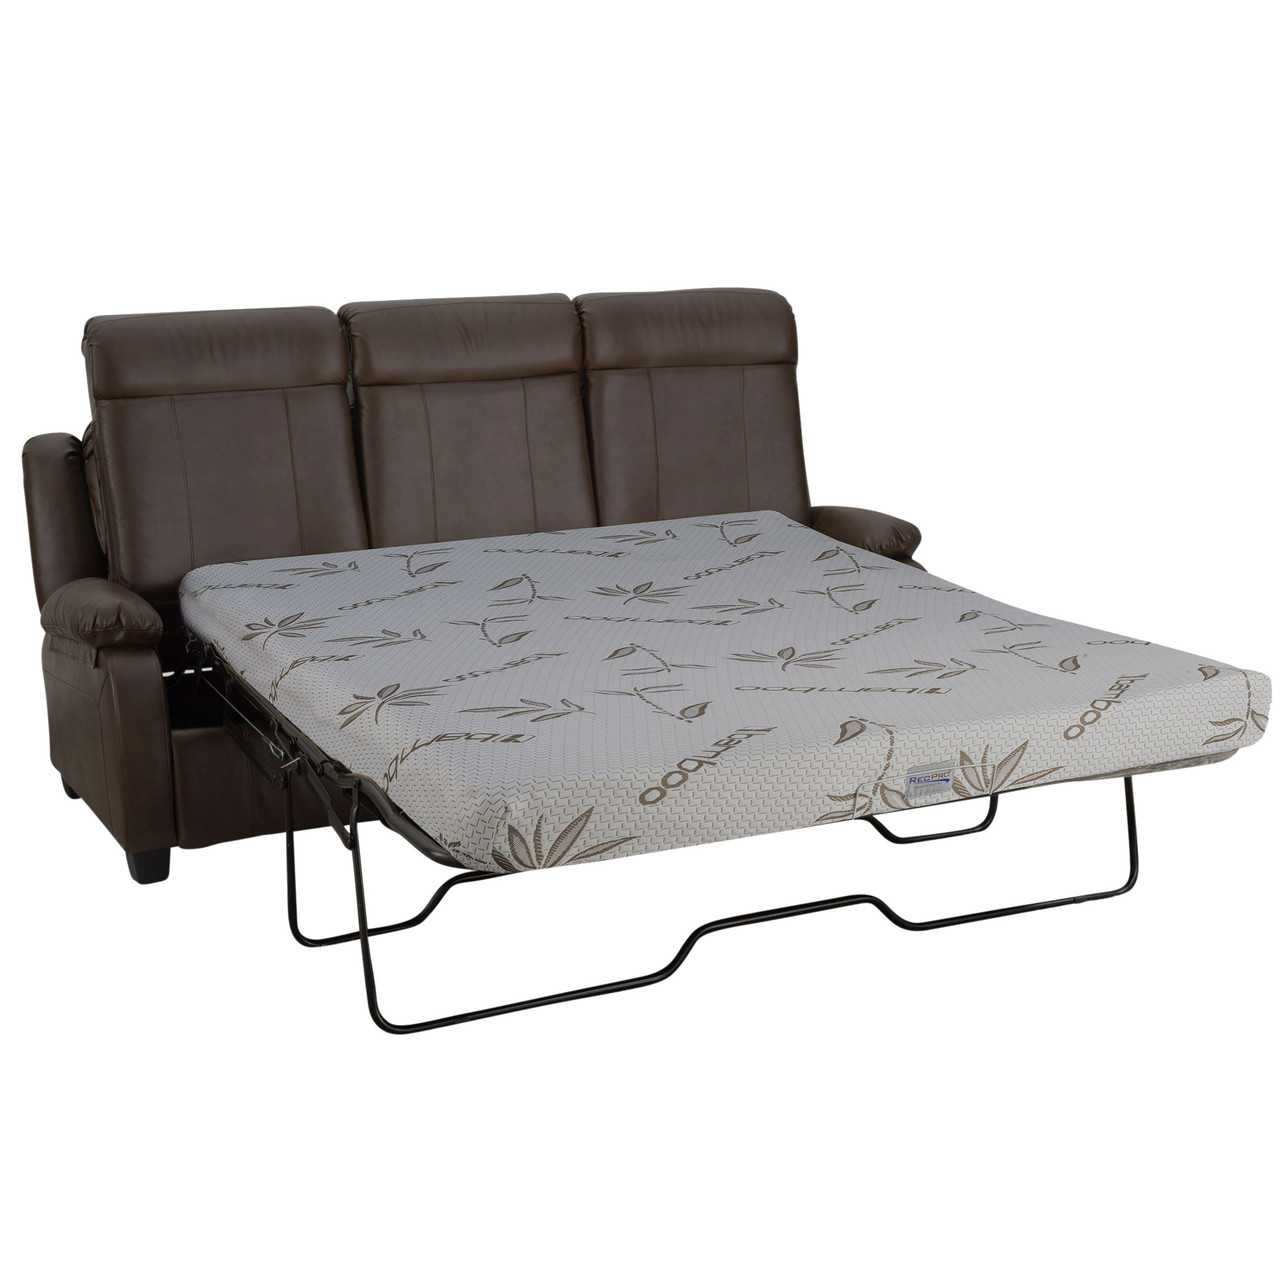 Picture of: Recpro Charles 80 Rv Sleeper Sofa With Hide A Bed Recpro